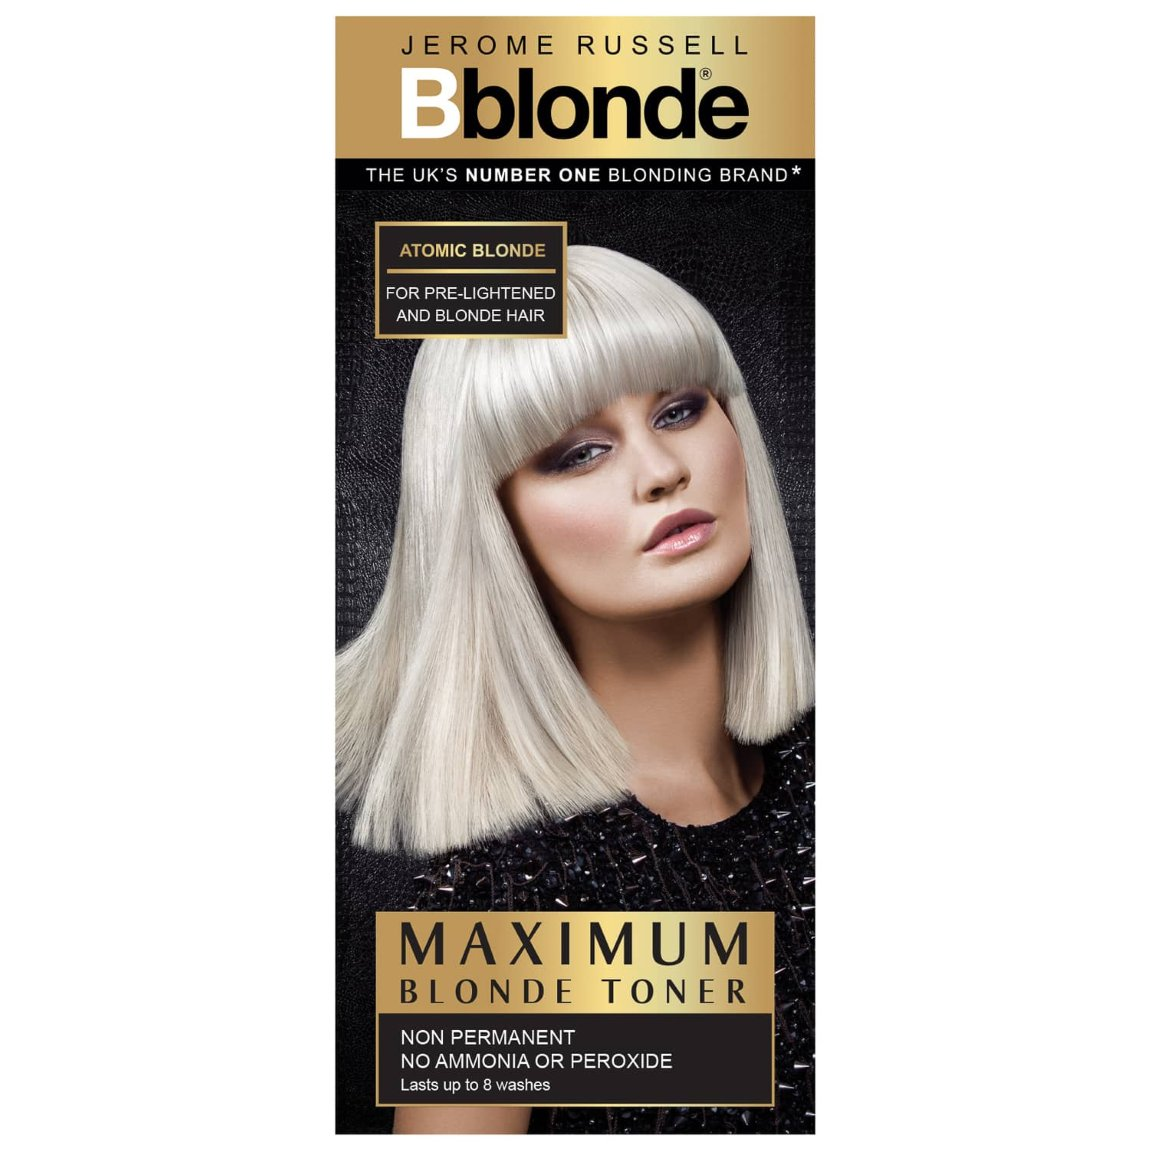 Bblonde Maximum Blonde Toner - Atomic Blonde